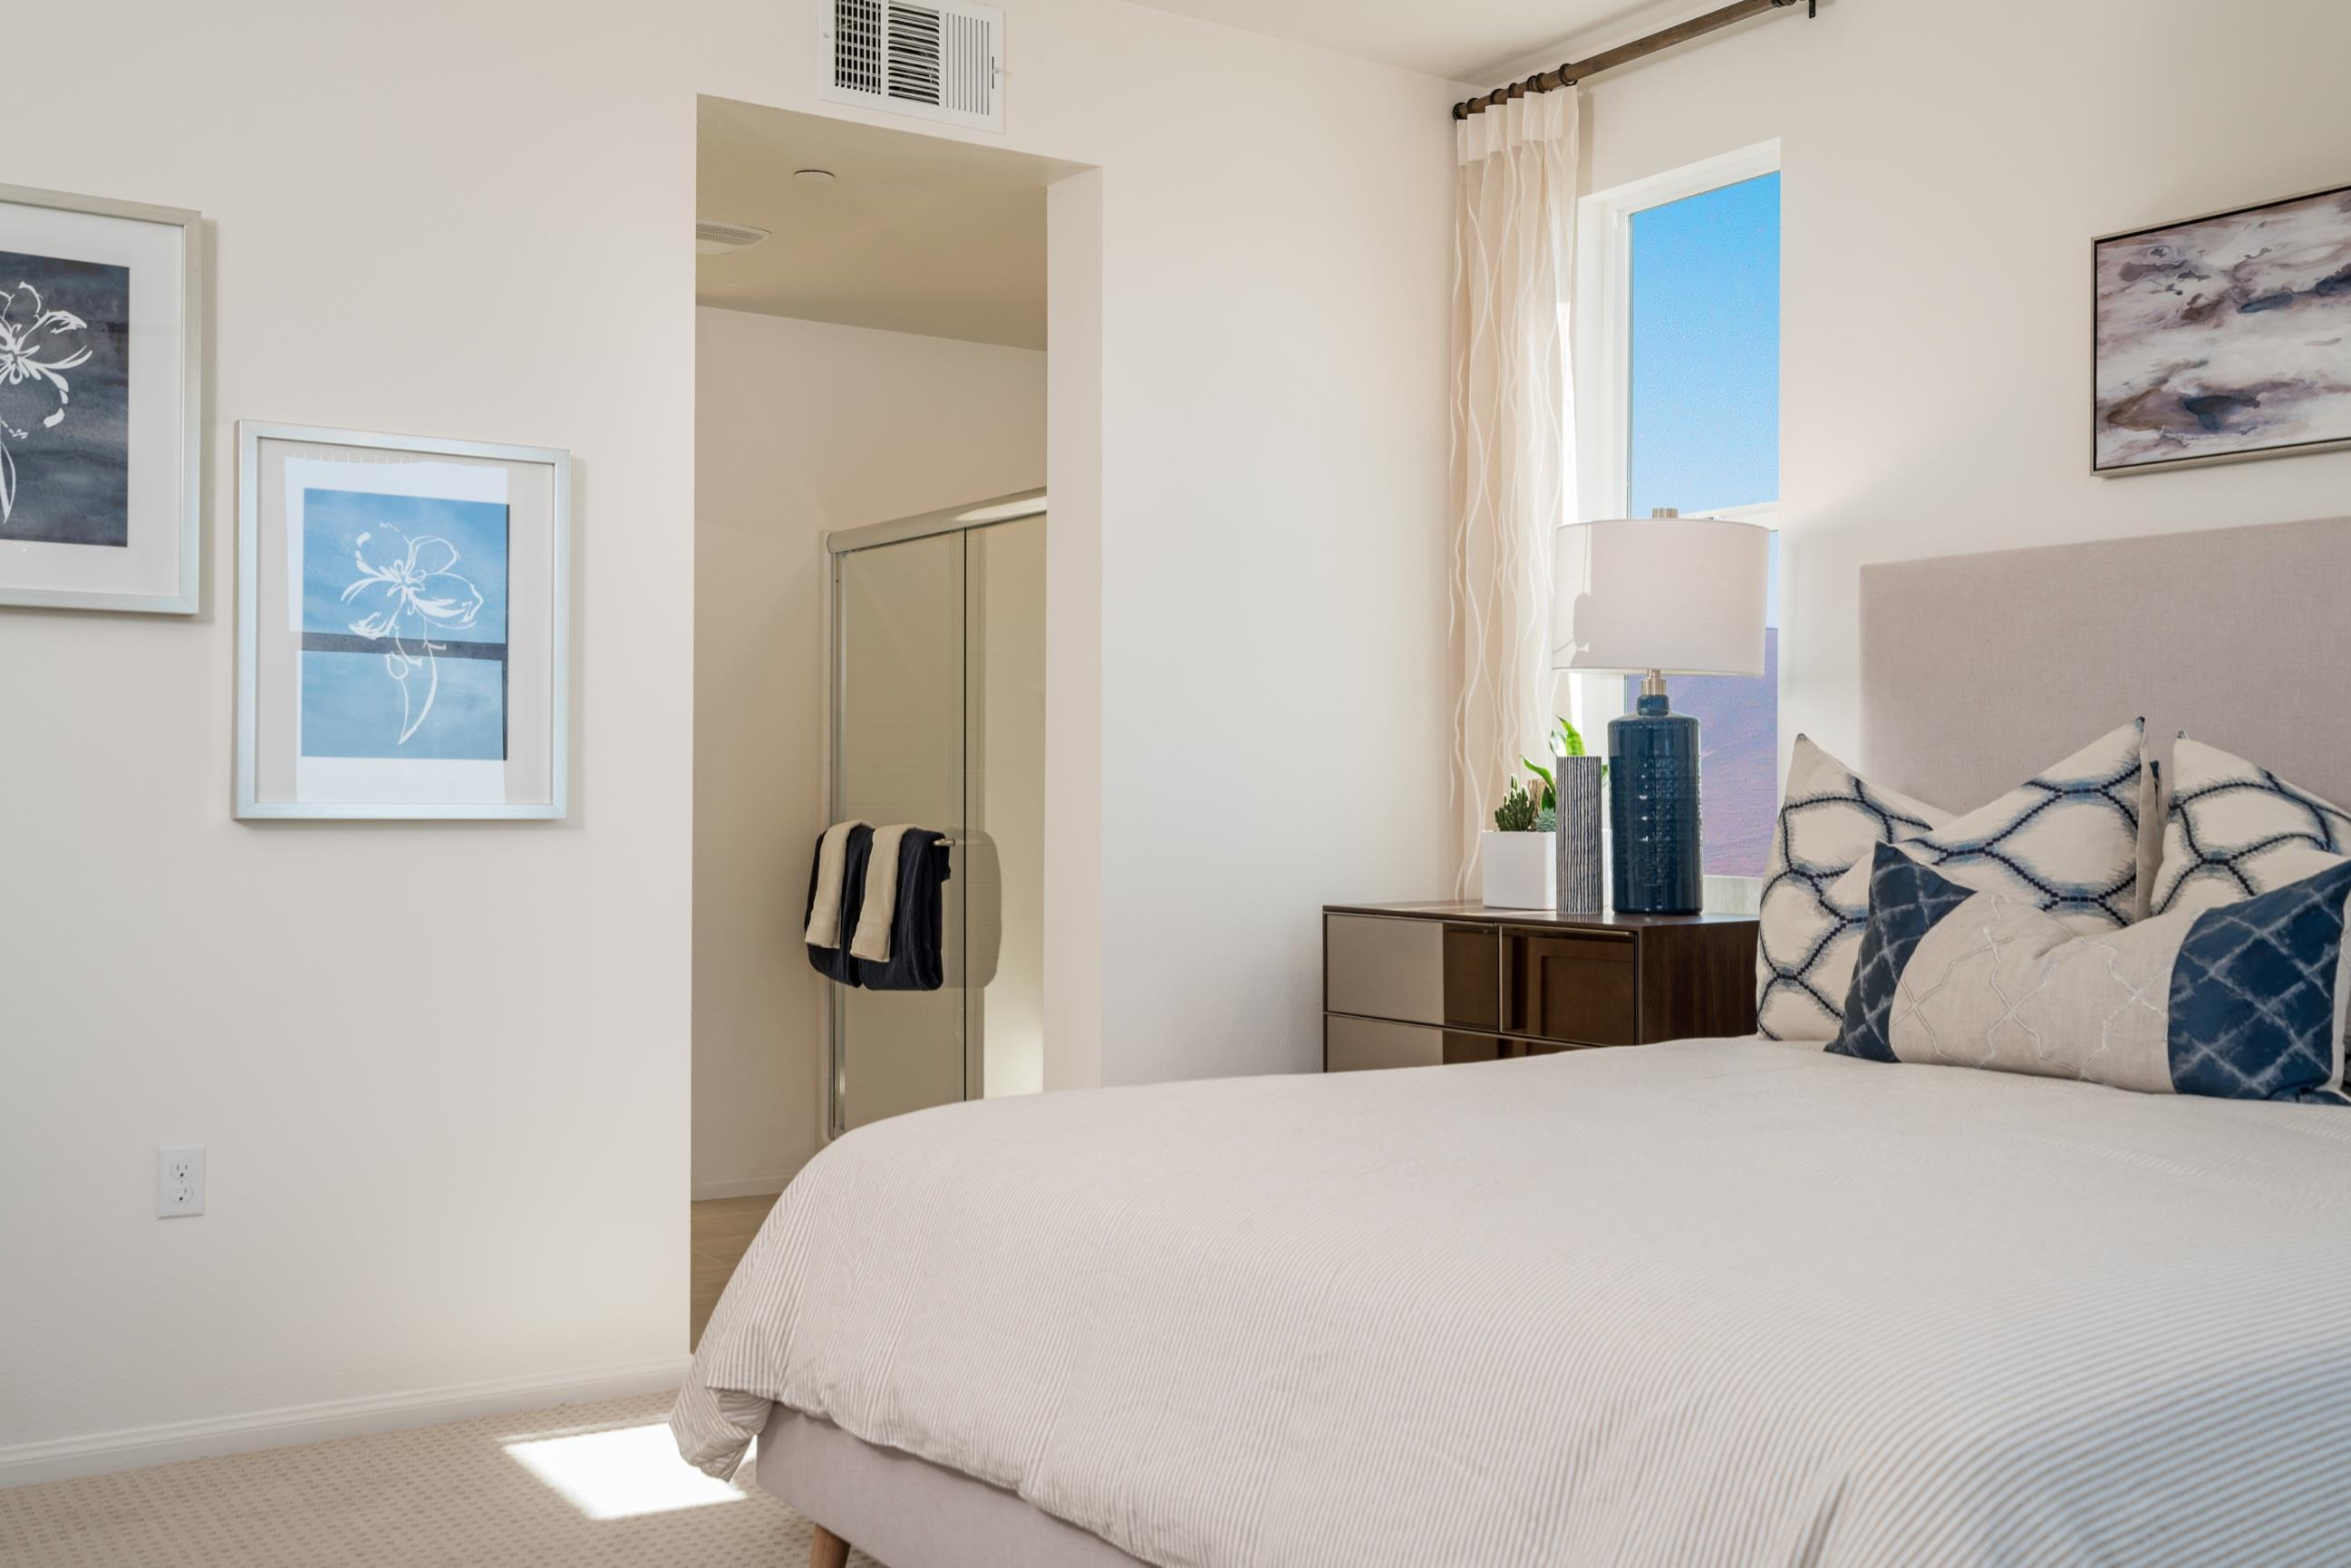 Bedroom featured in the Plan 3 By Heritage Building & Dev't in San Diego, CA